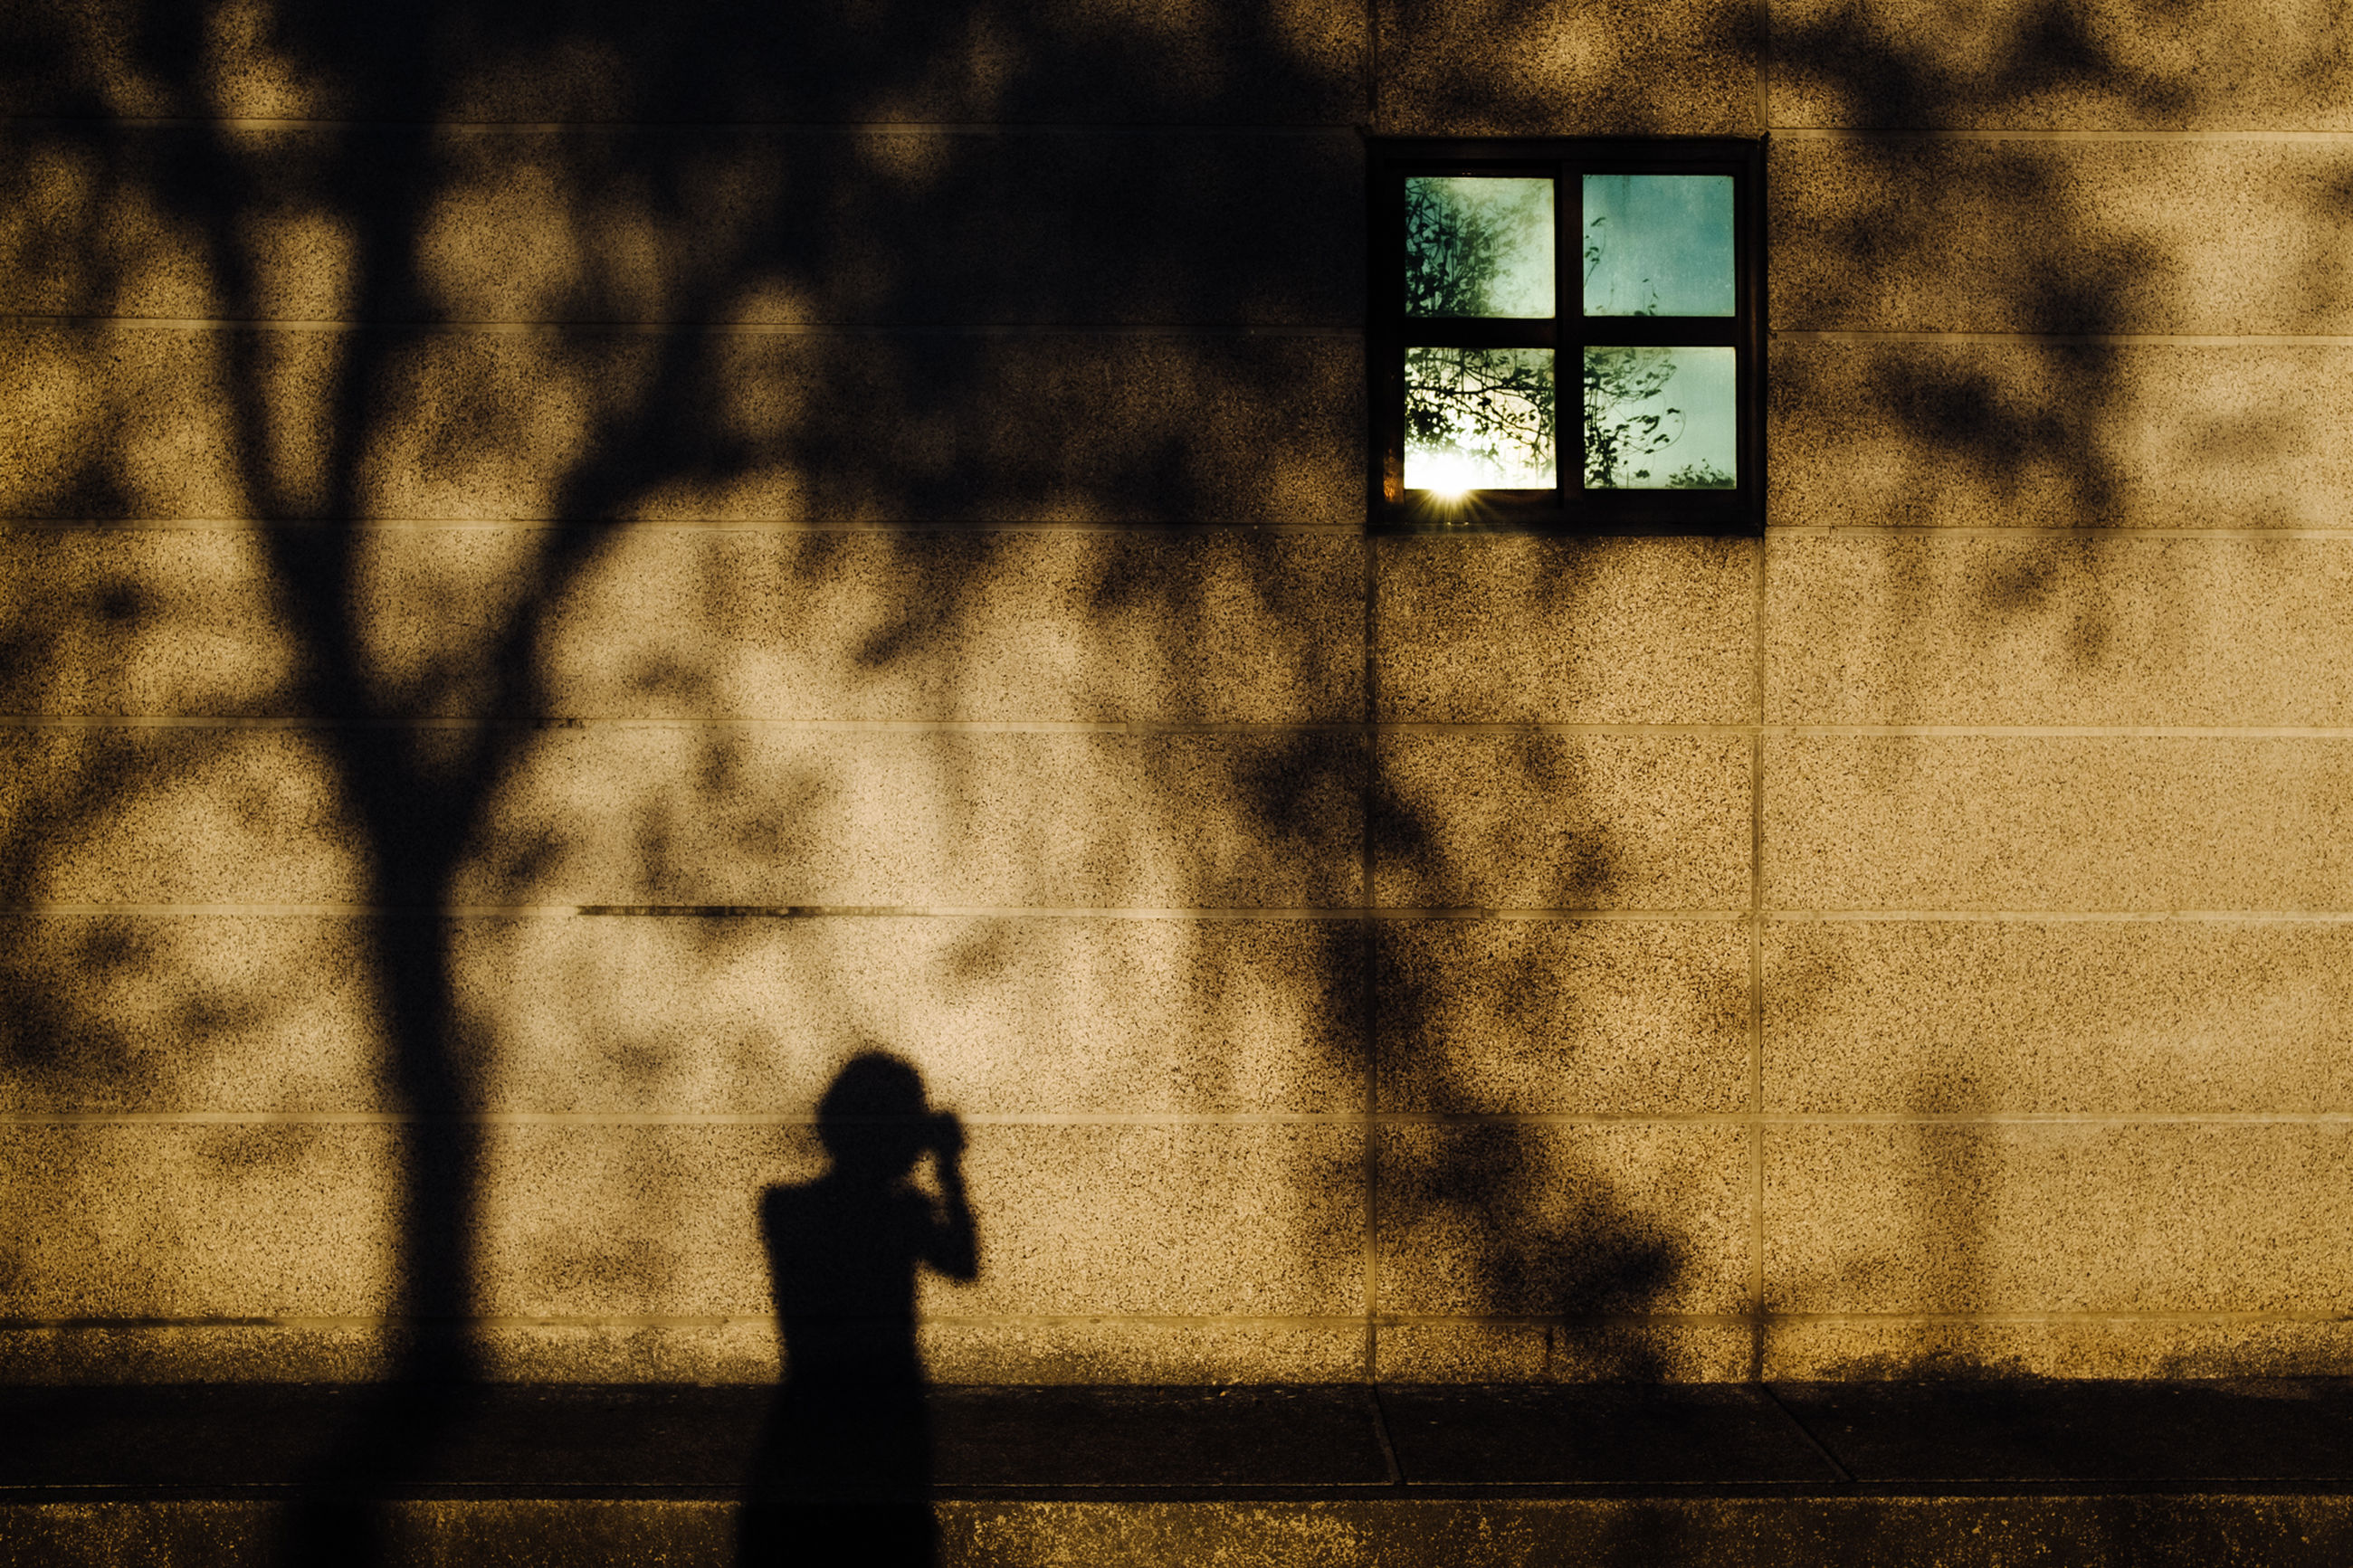 shadow, window, architecture, day, one person, building exterior, outdoors, sunlight, built structure, real people, city, people